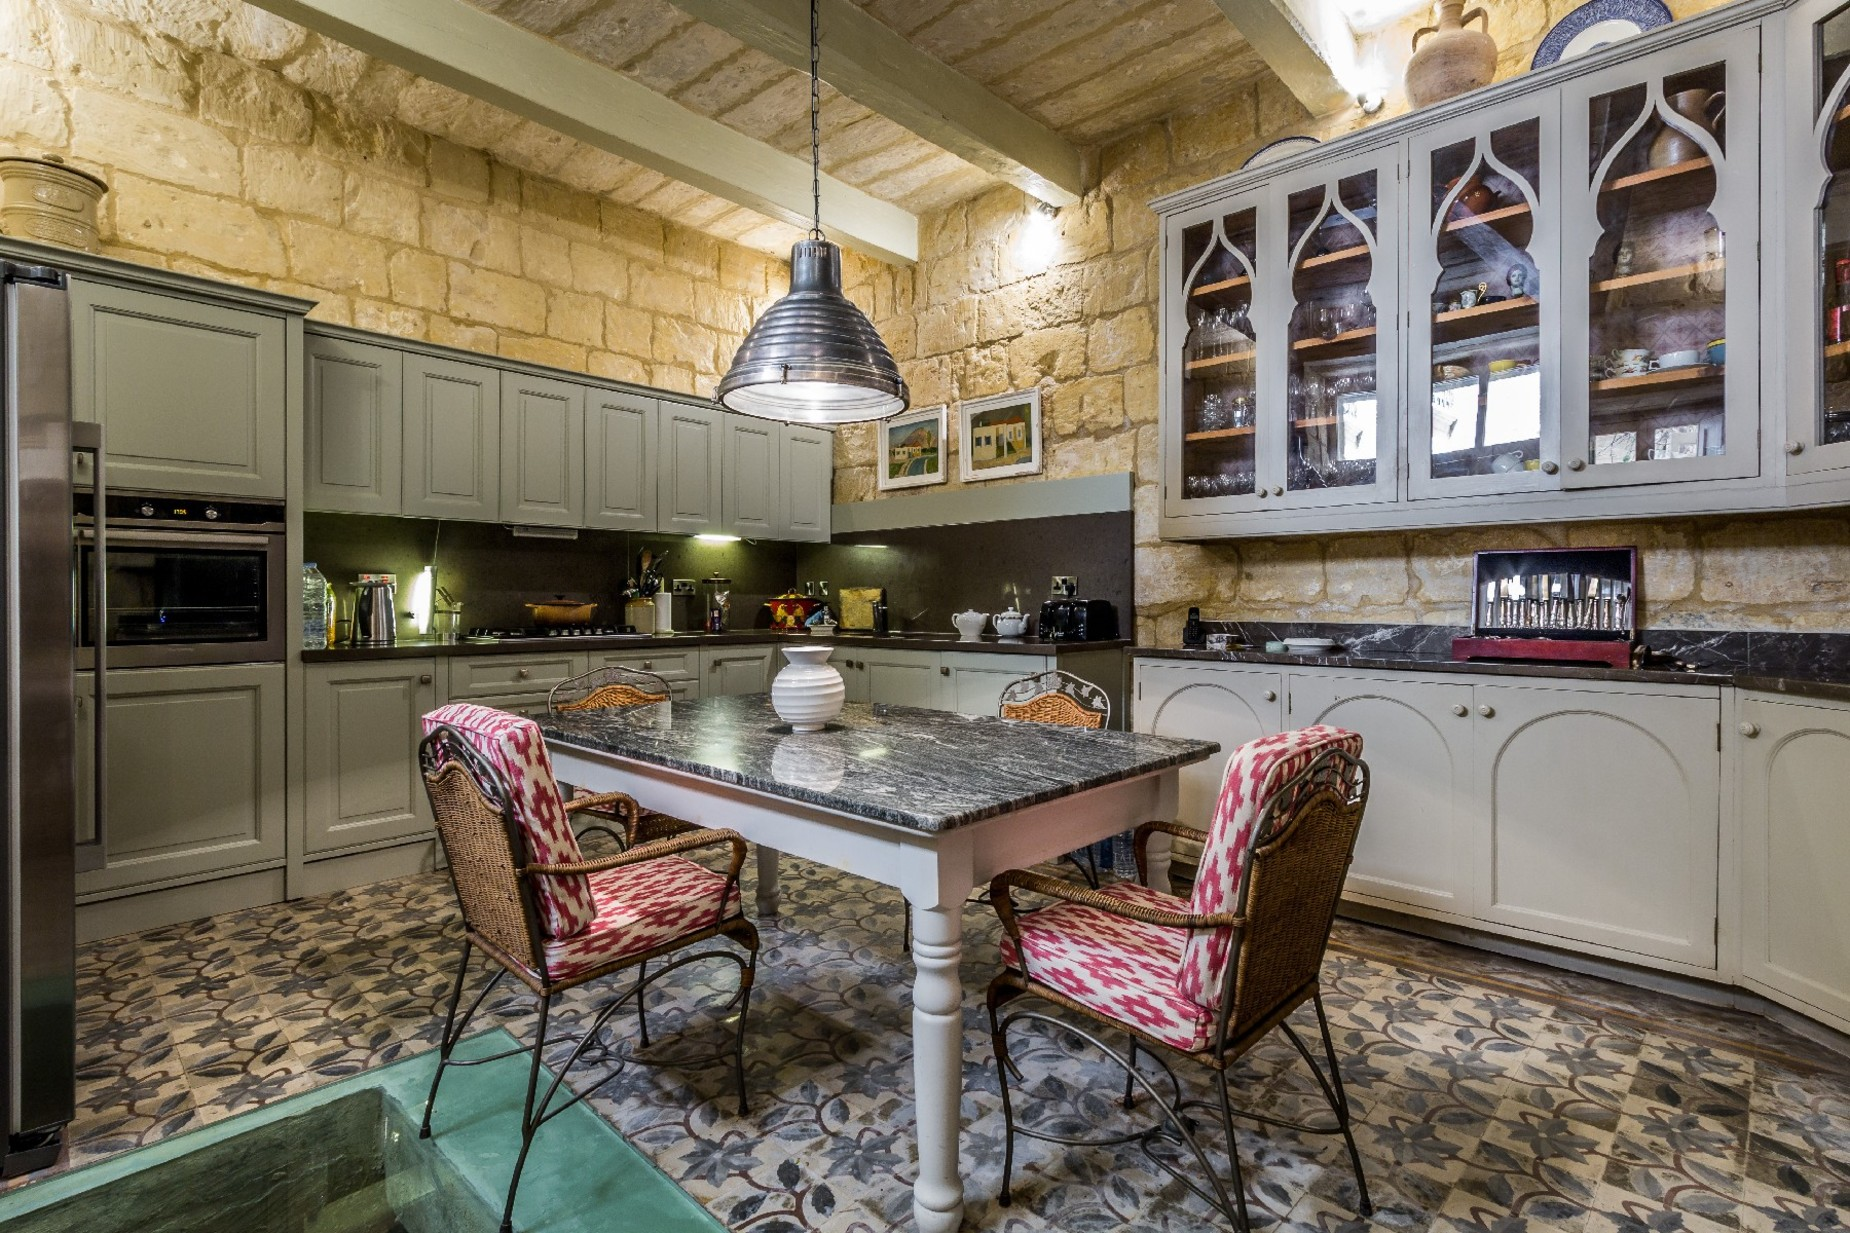 5 bed Town House For Sale in Cospicua, Cospicua - thumb 11